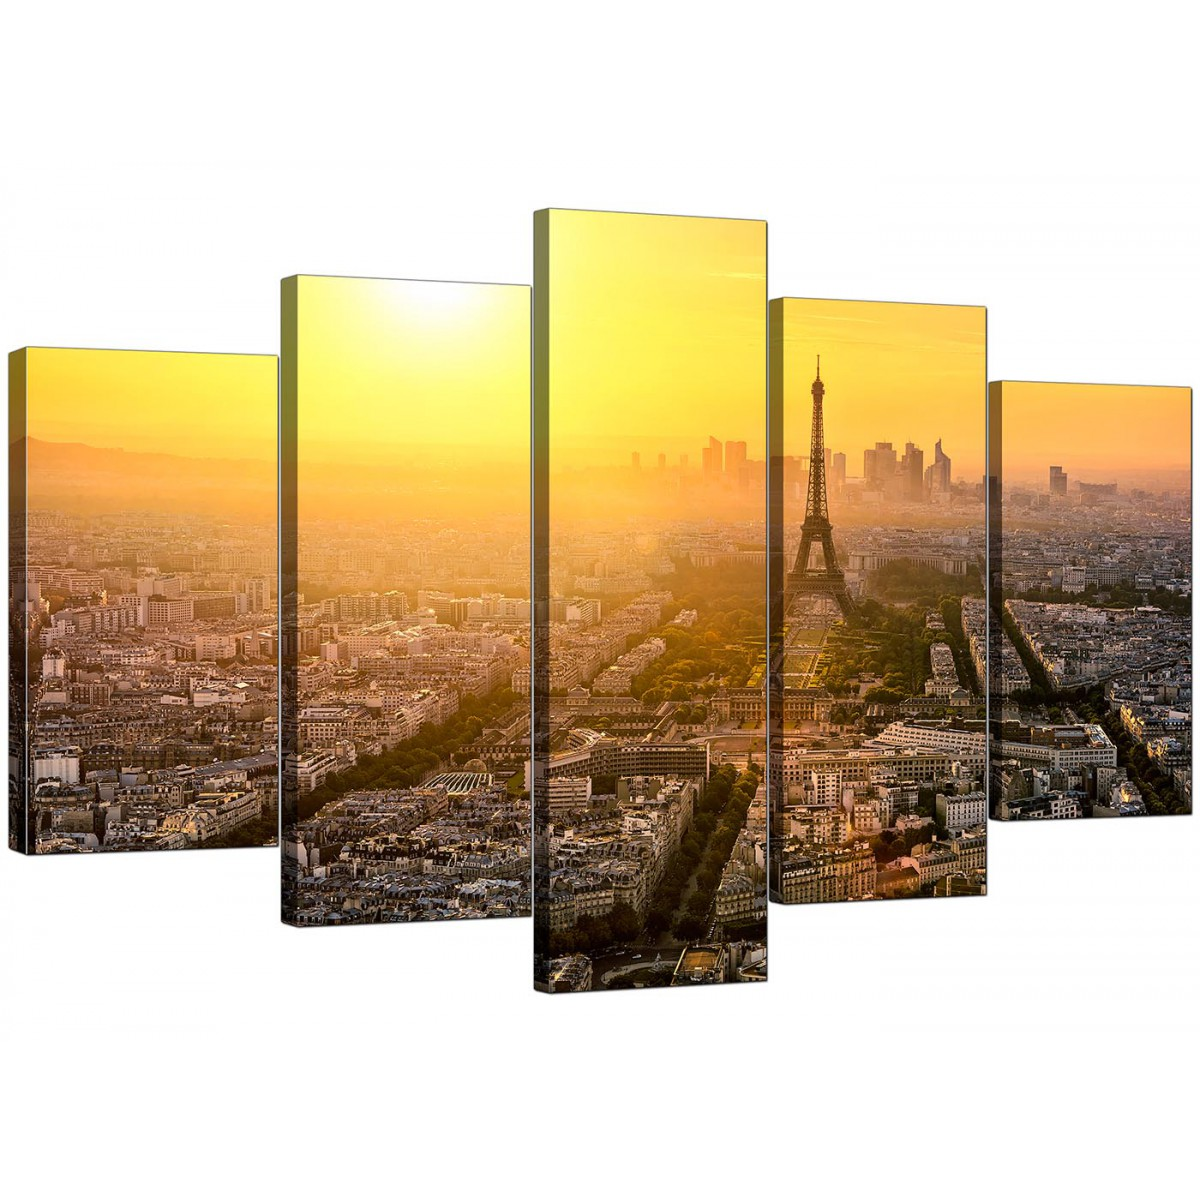 Paris Skyline Canvas Pictures for your Office - 5 Panel